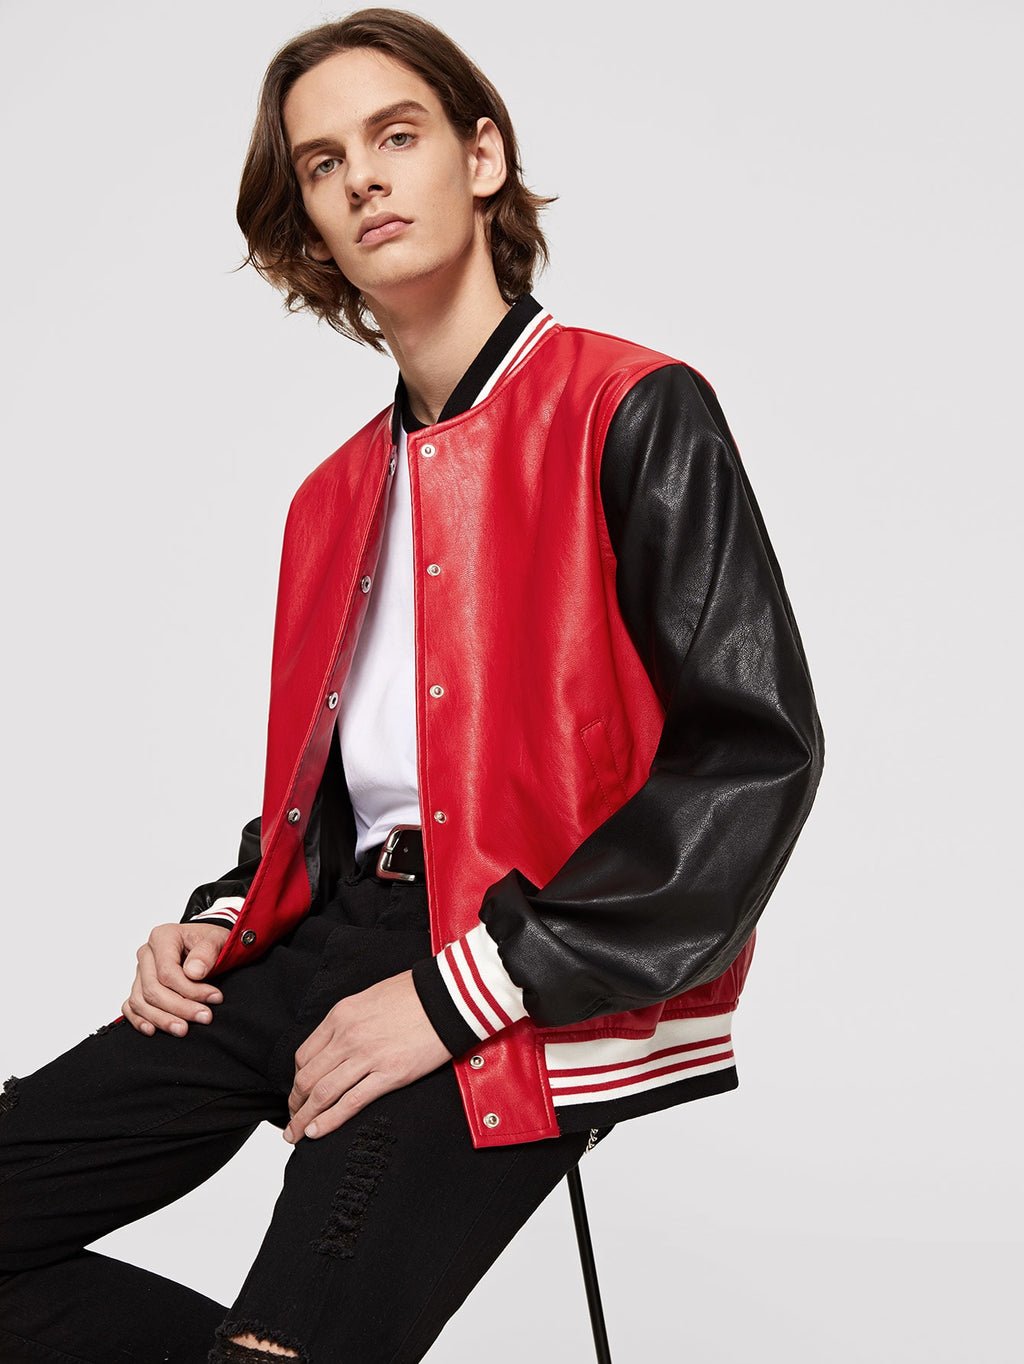 Workout Jackets - Men Contrast Striped Colorblock PU Jacket